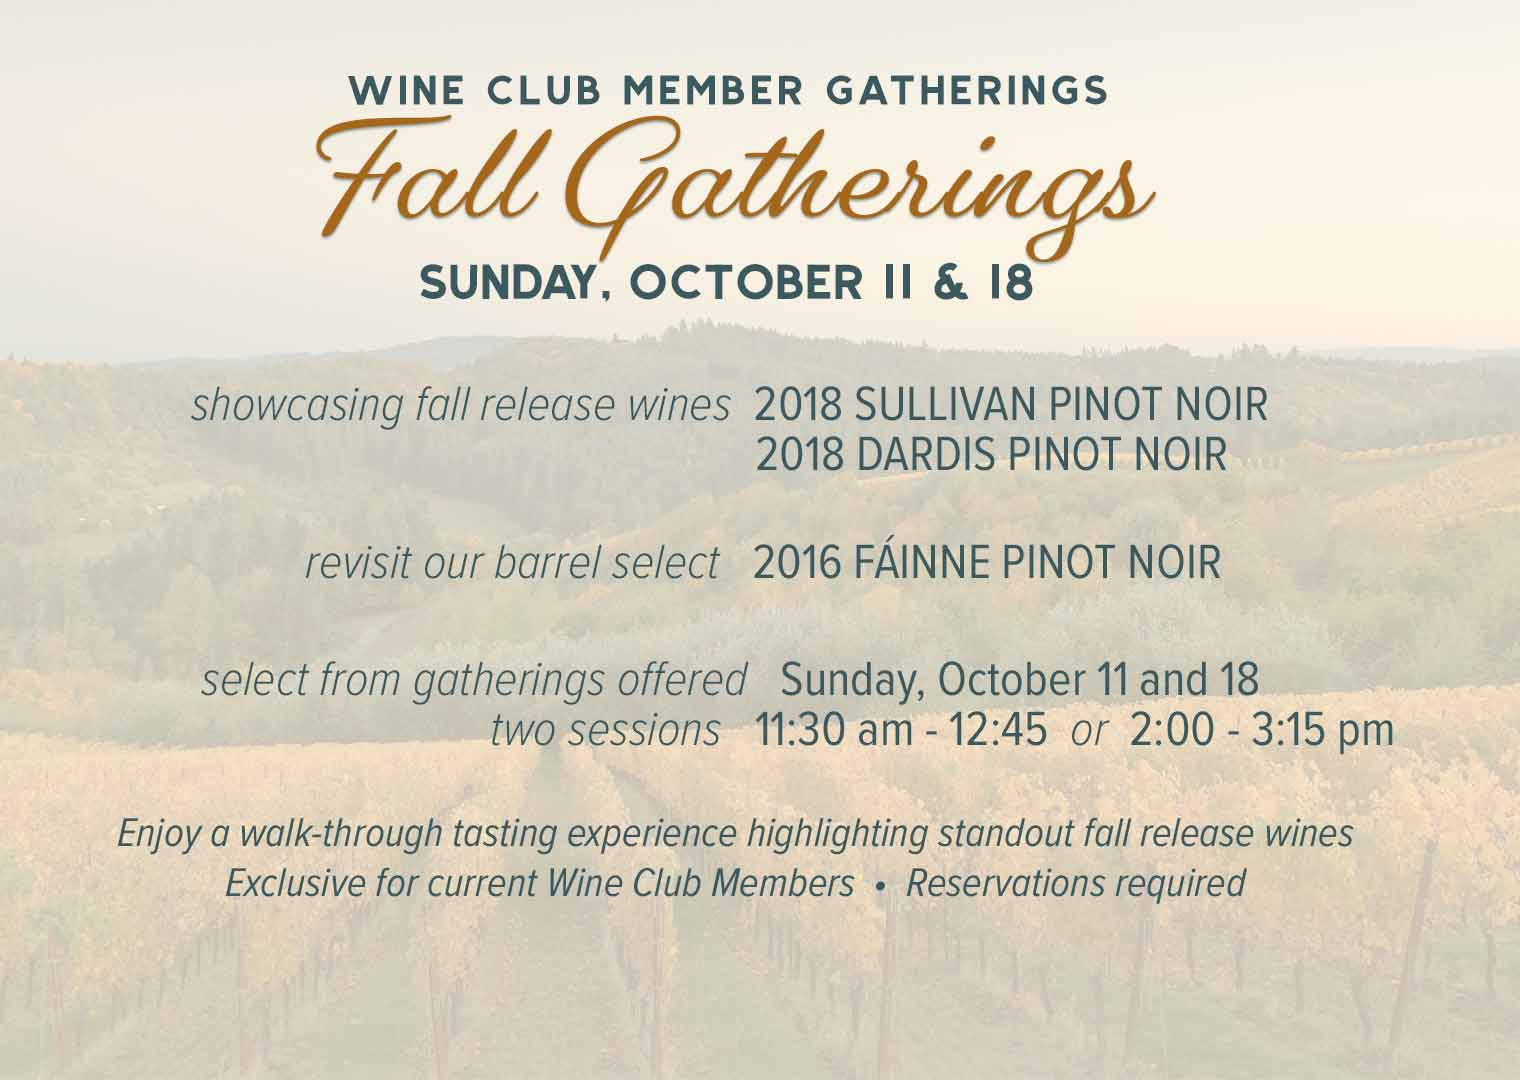 The Fairsing Vineyard tasting room with barrel ceiling and expansive views of the Willamette Valley